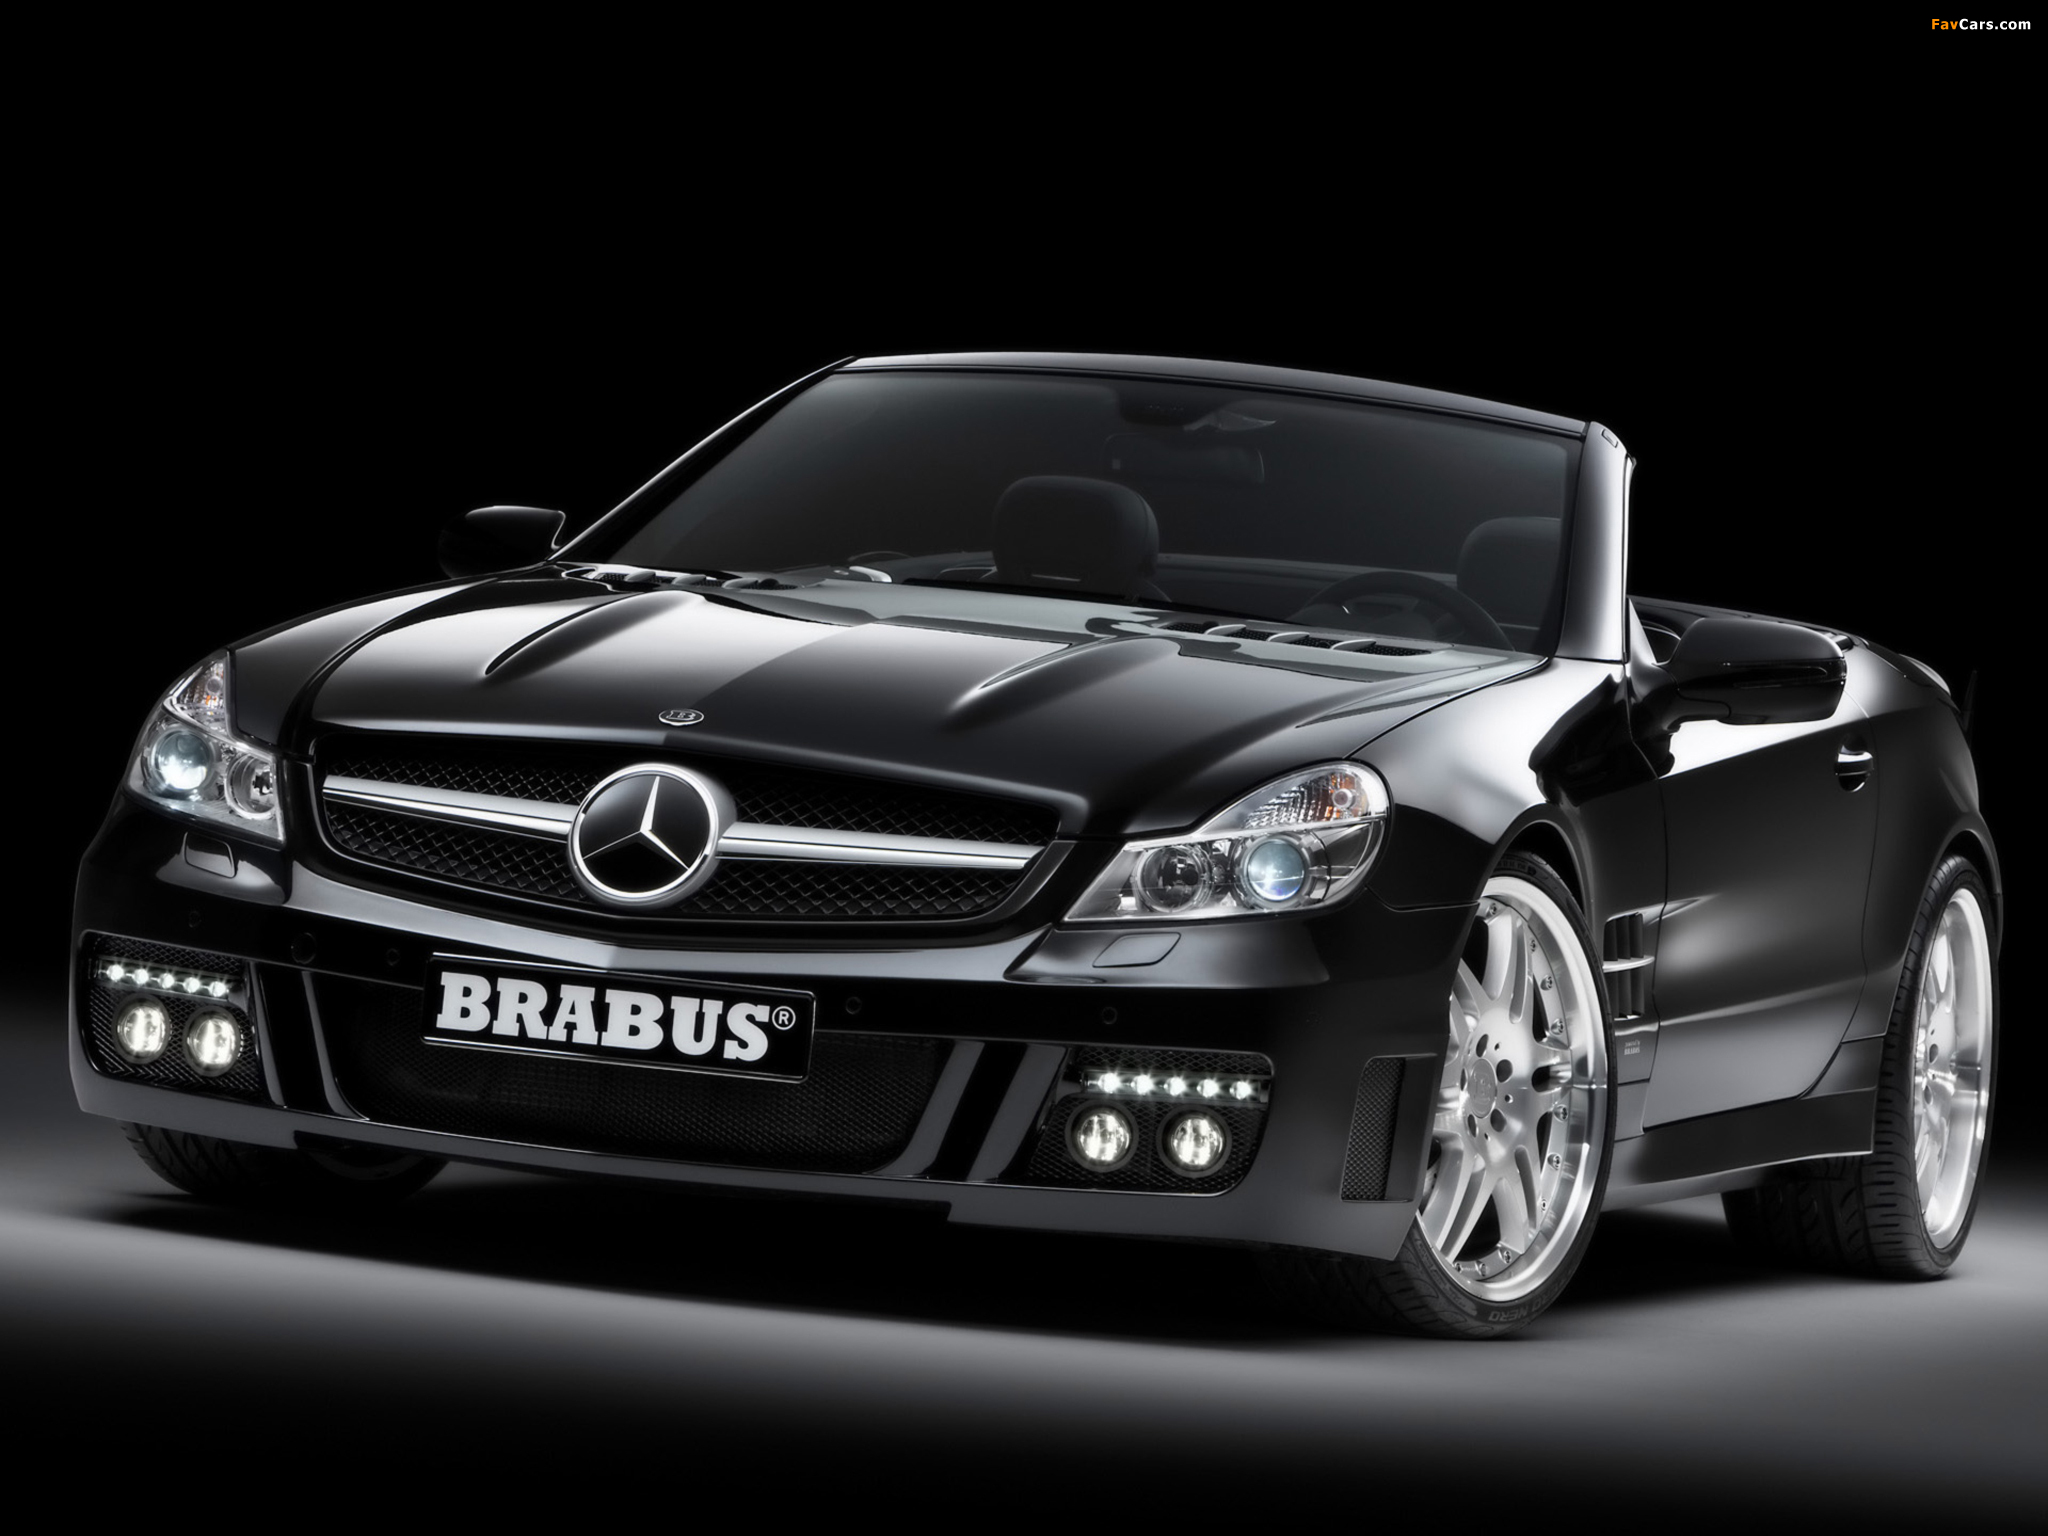 Brabus S V12 S (R230) 2008 wallpapers (2048 x 1536)